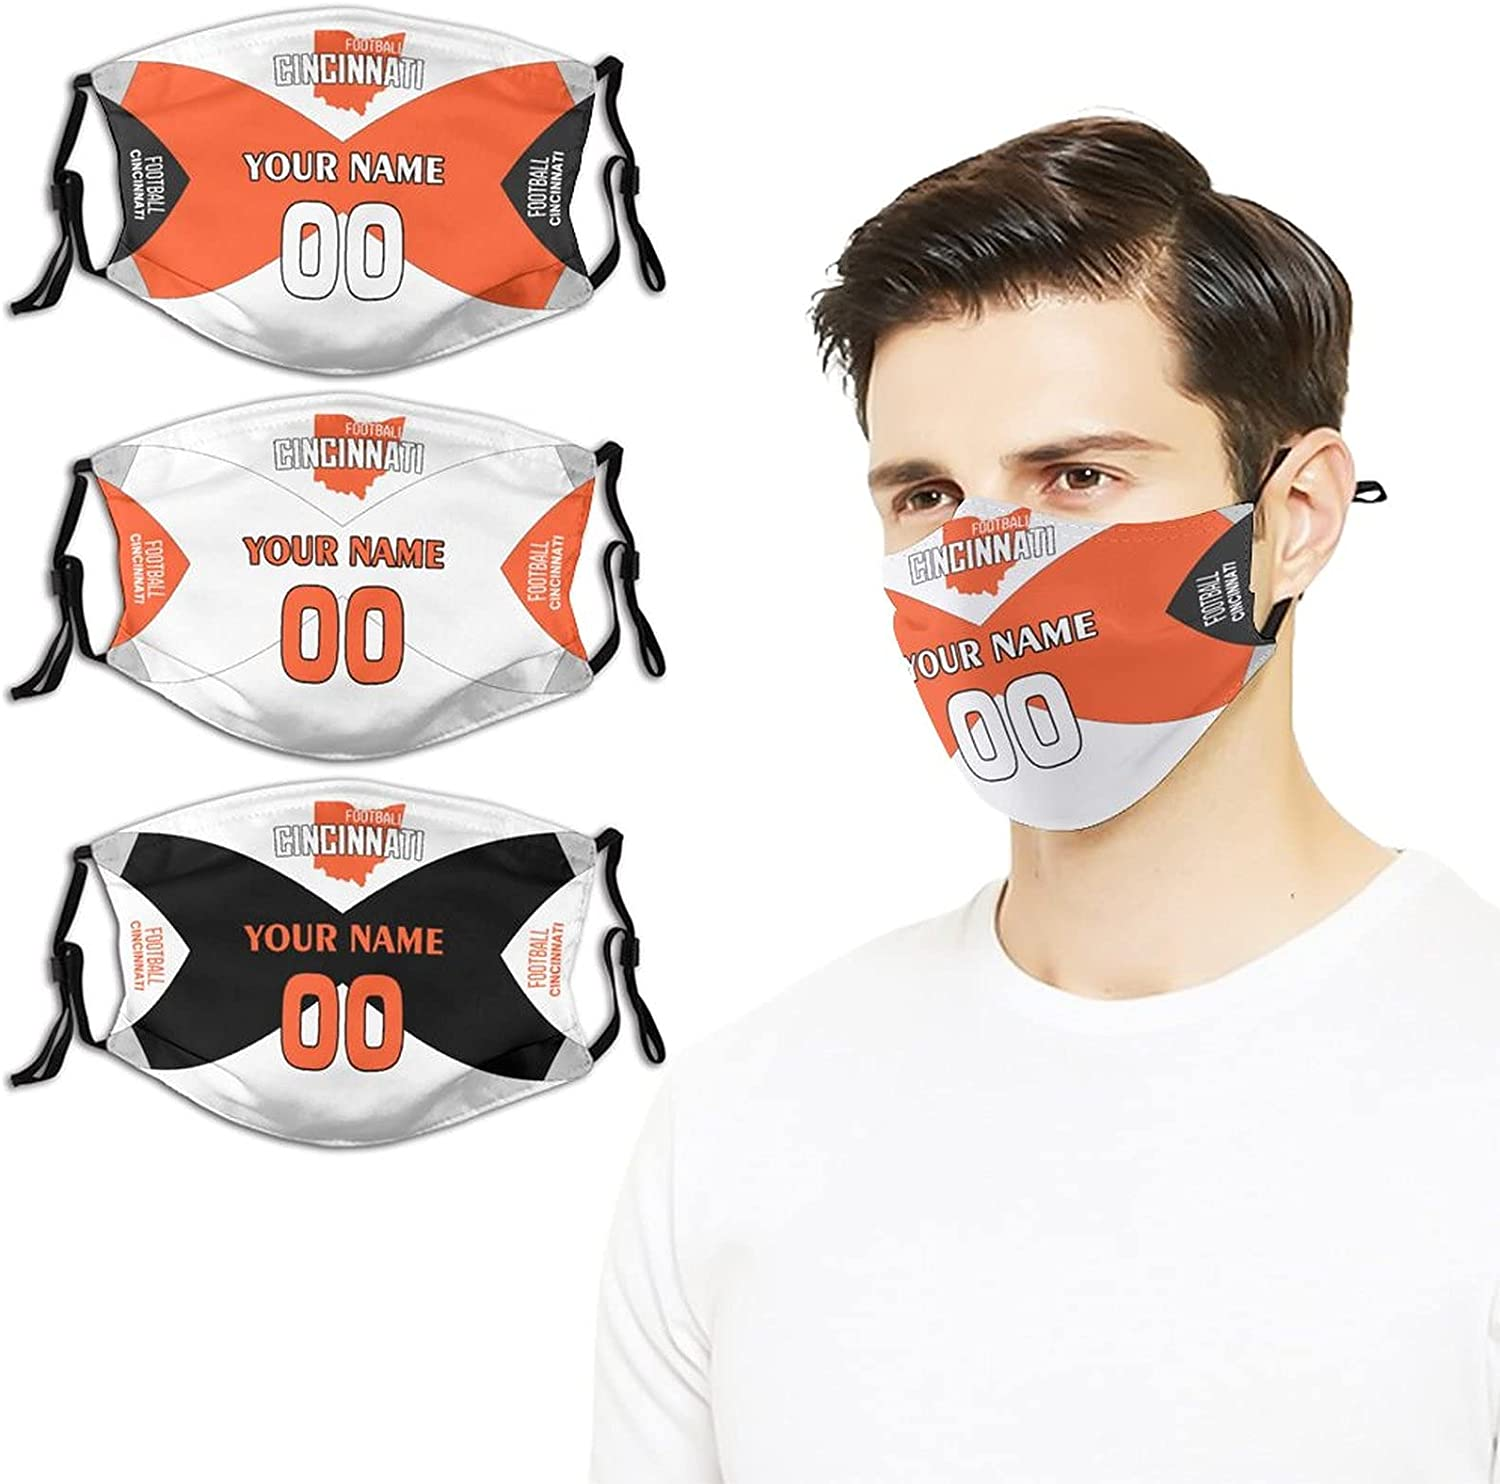 Custom Sale item 3PCS Football Mouth Cover Max 72% OFF Earloop Adjustable Ma with Face